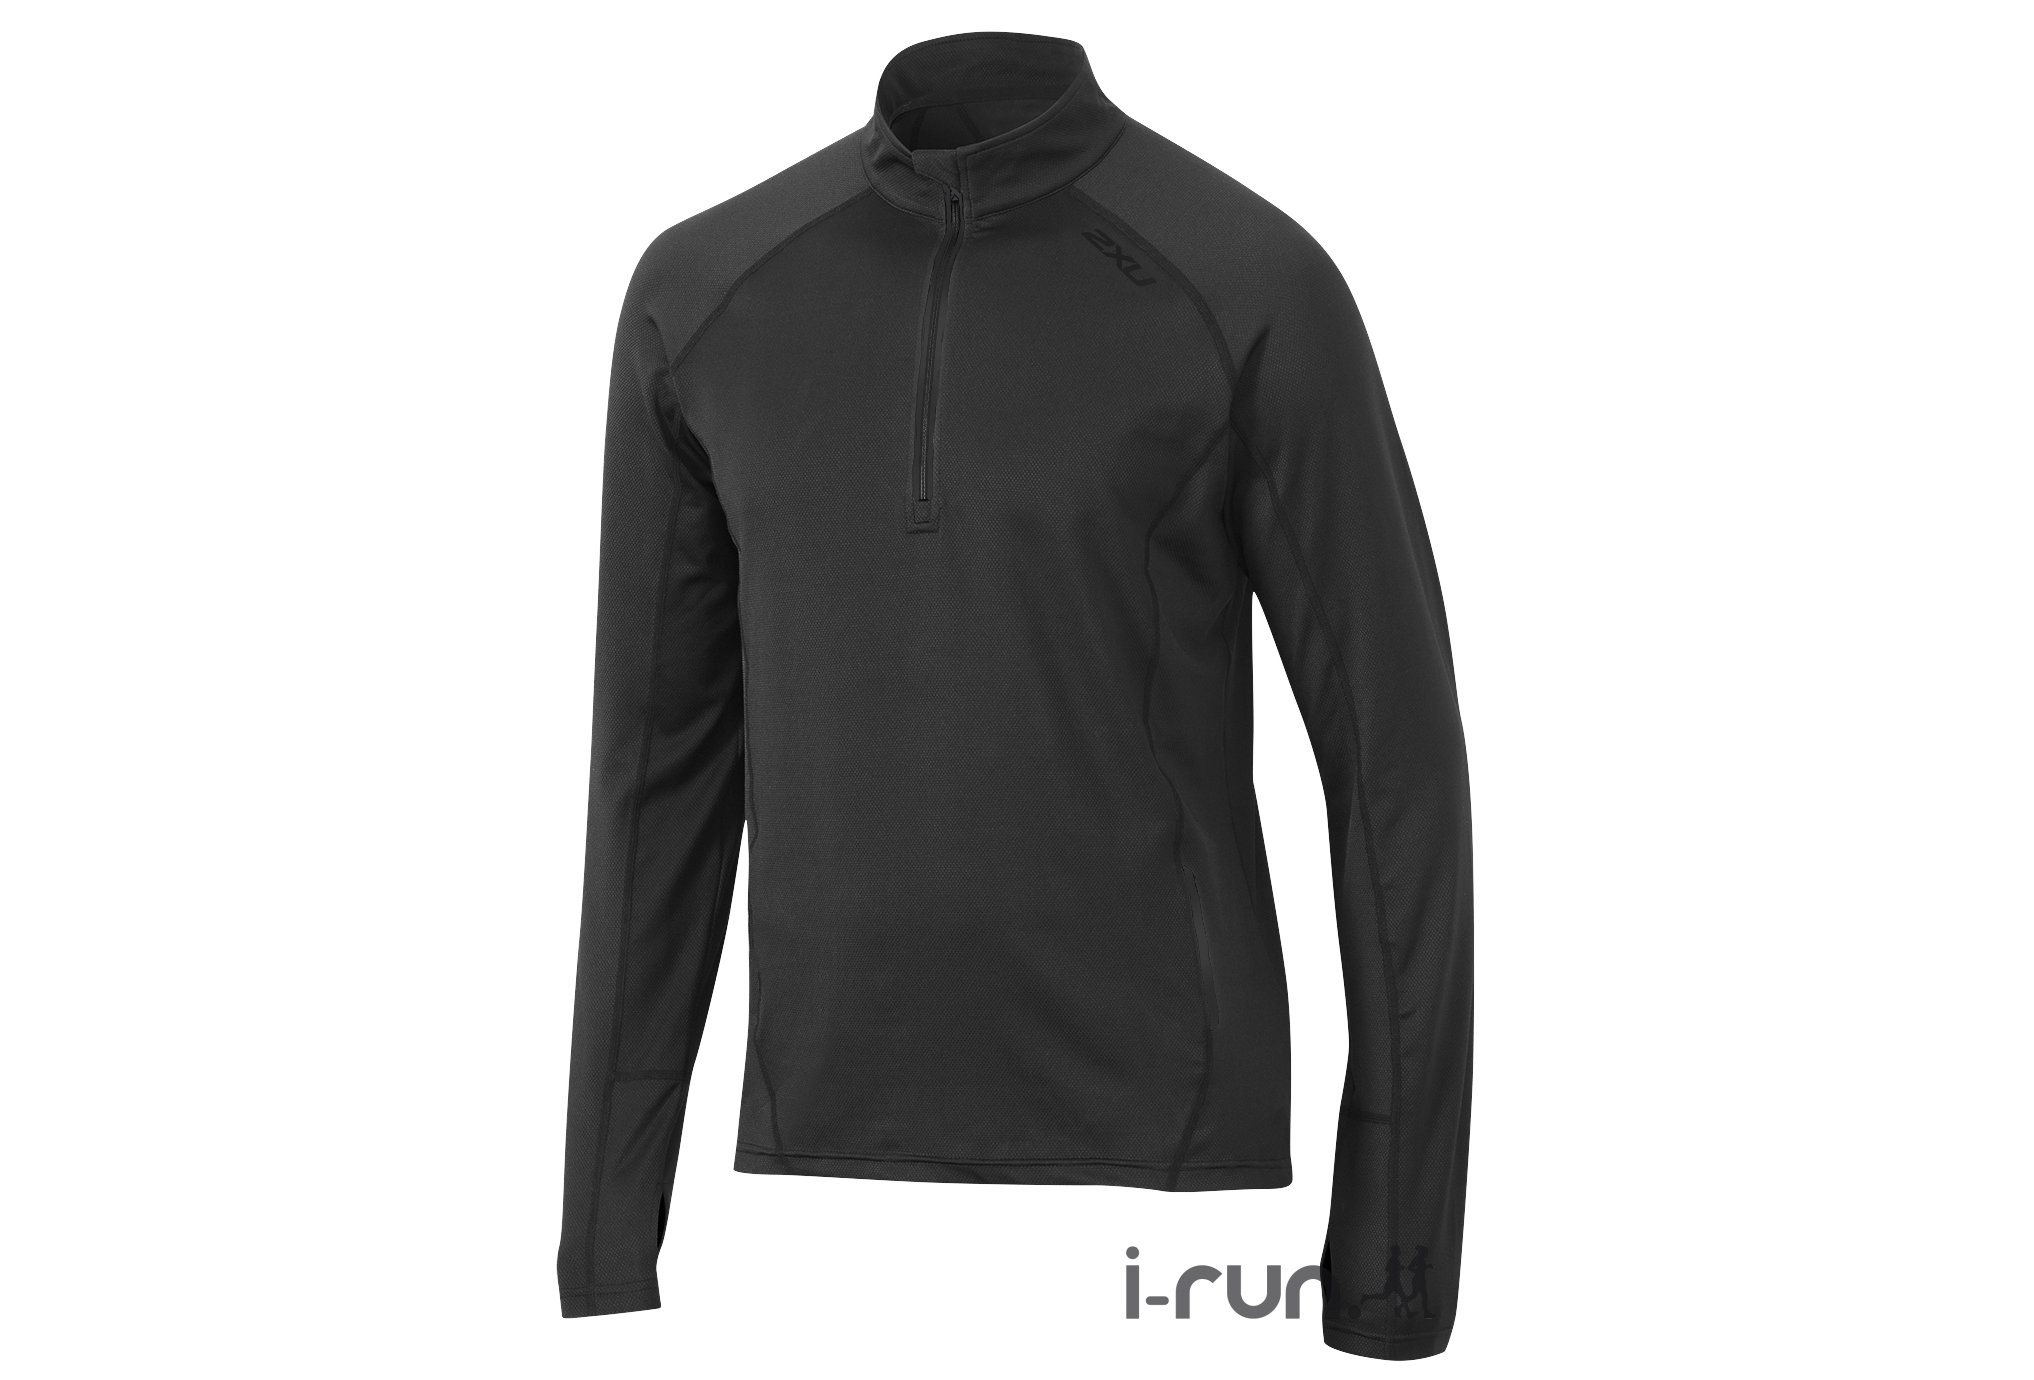 2xu Maillot hyoptik thermal m vêtement running homme